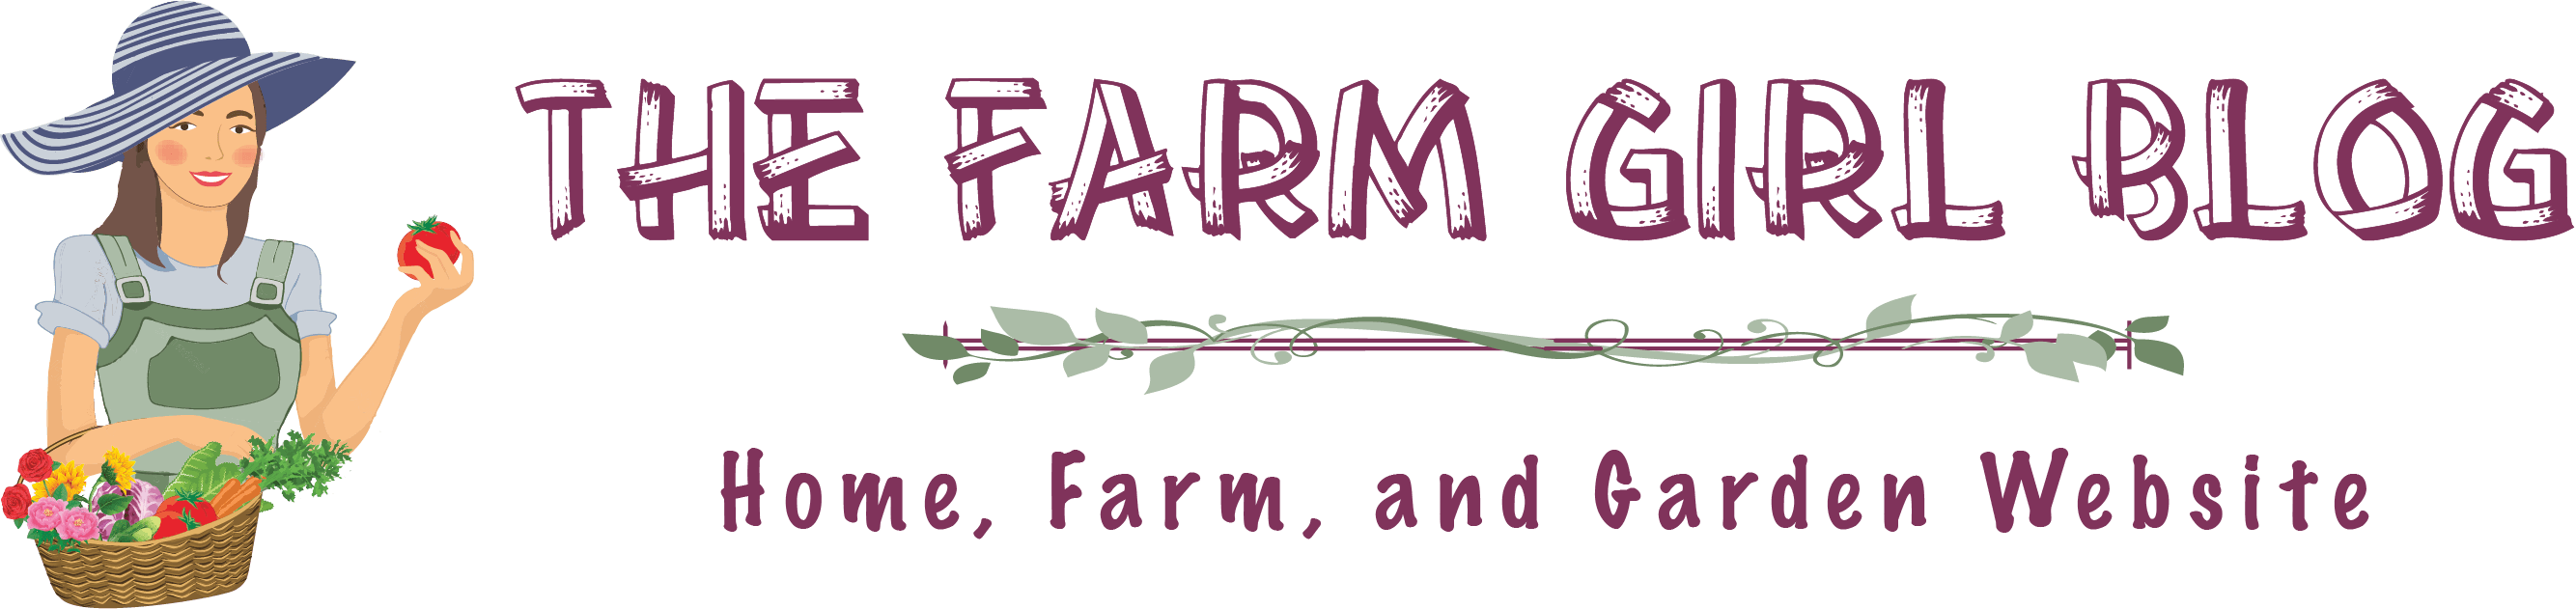 The Farm Girl Blog logo